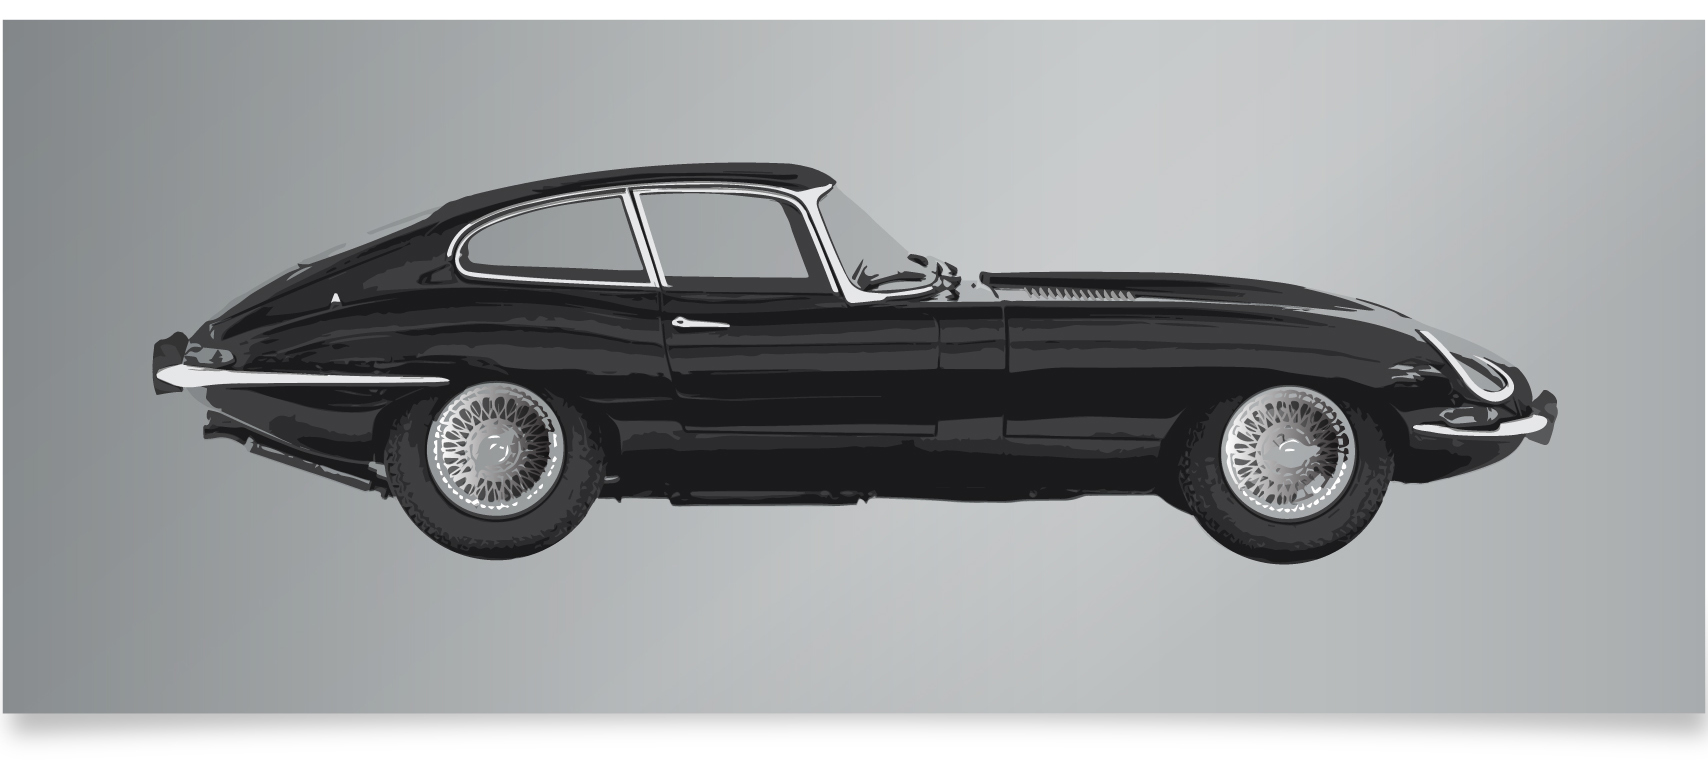 e type jaguar classic car - Cars Pictures To Print